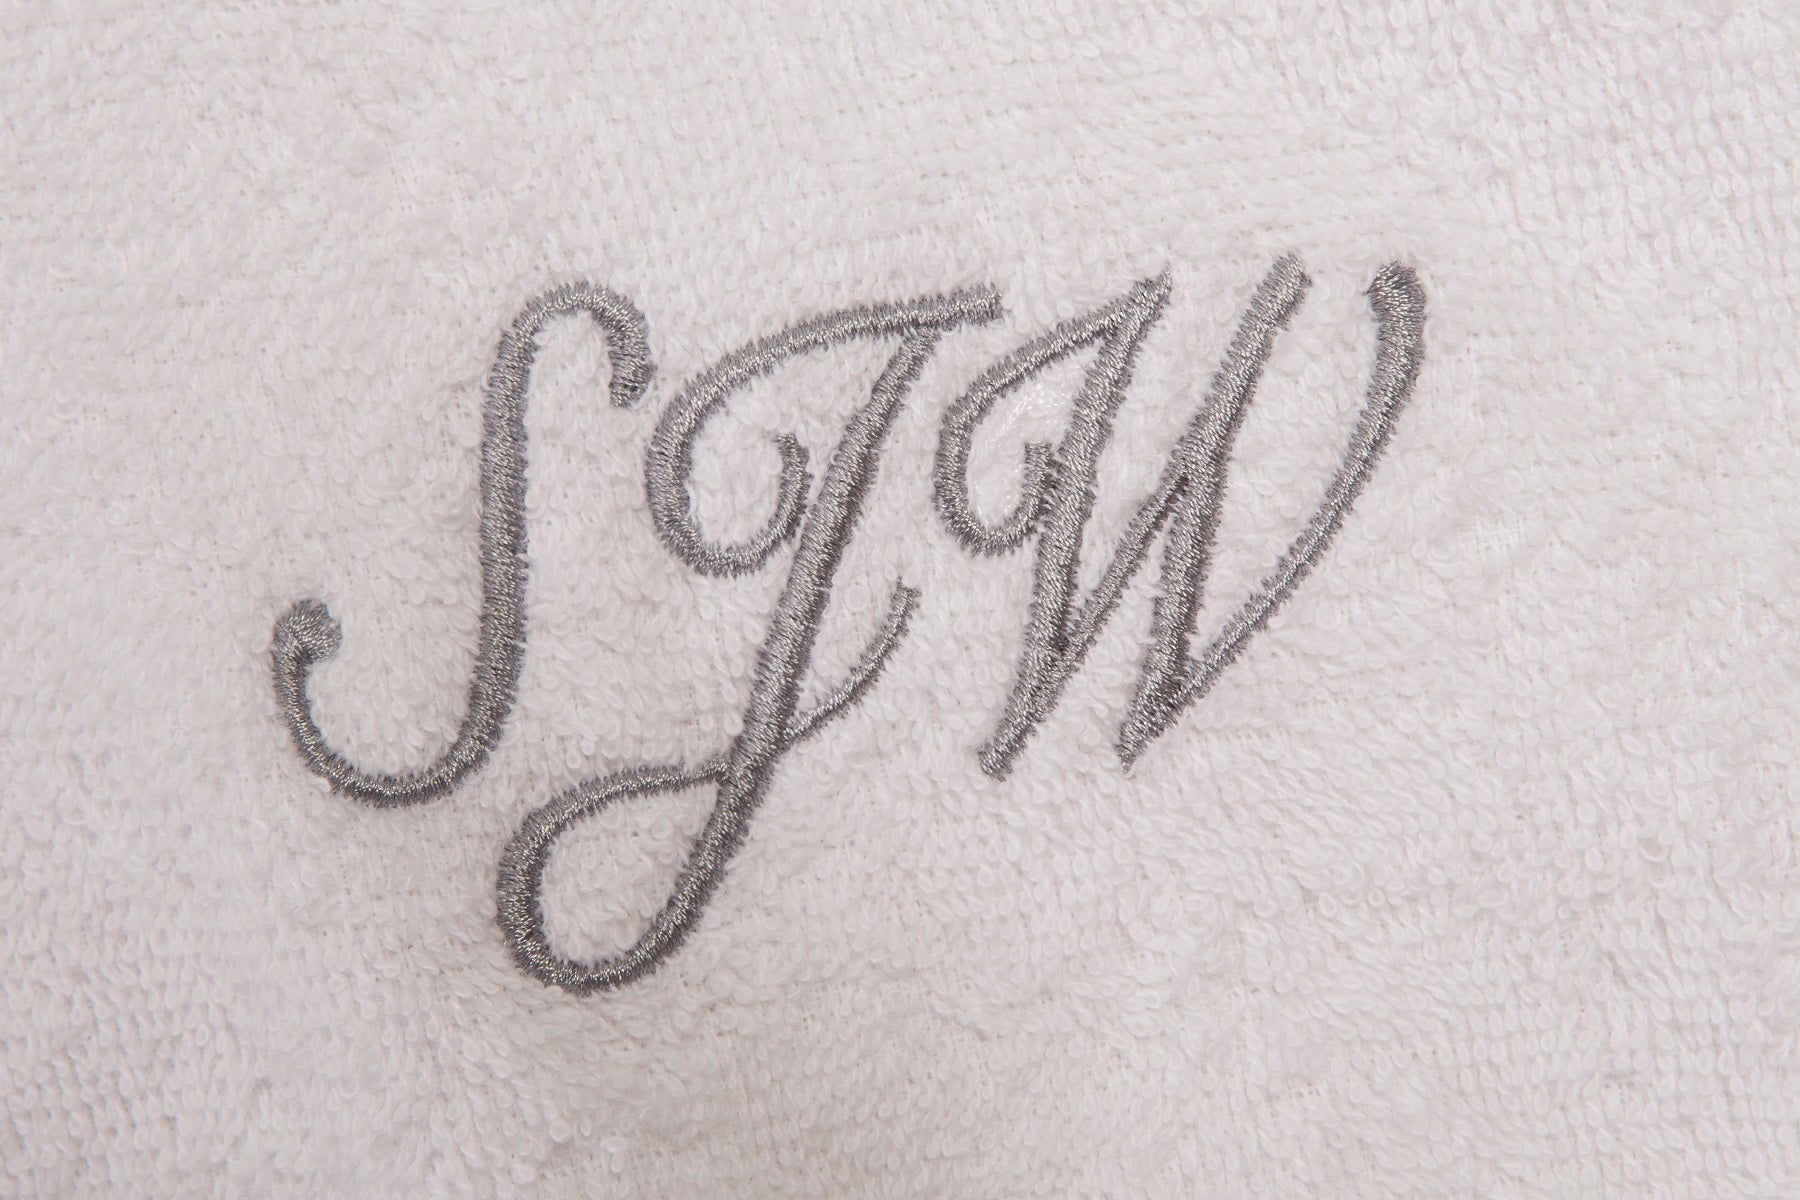 Personalisation embroidery